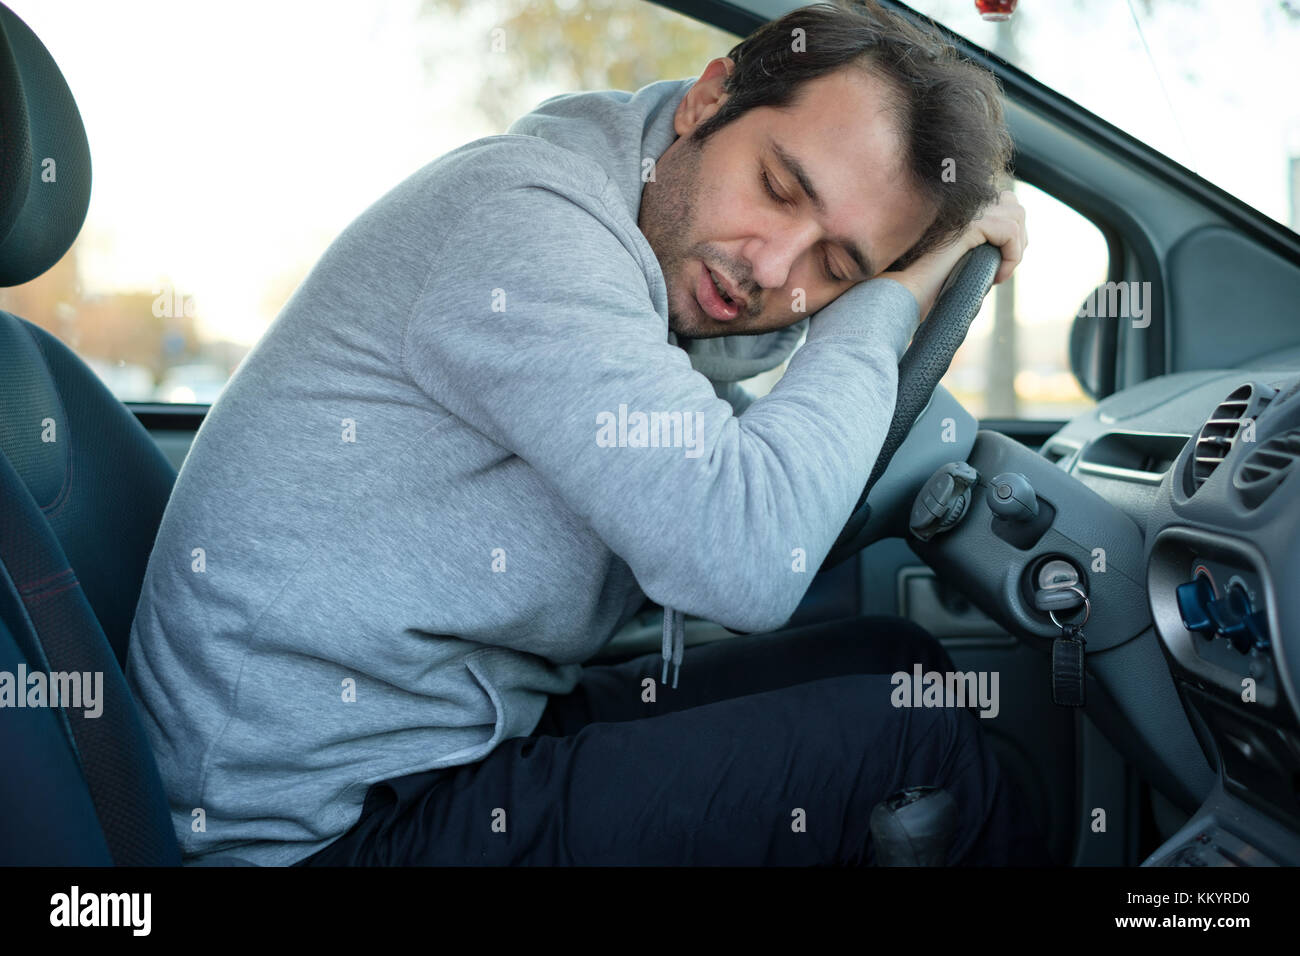 Sleepy yawning man driving car in traffic after long hour drive - Stock Image